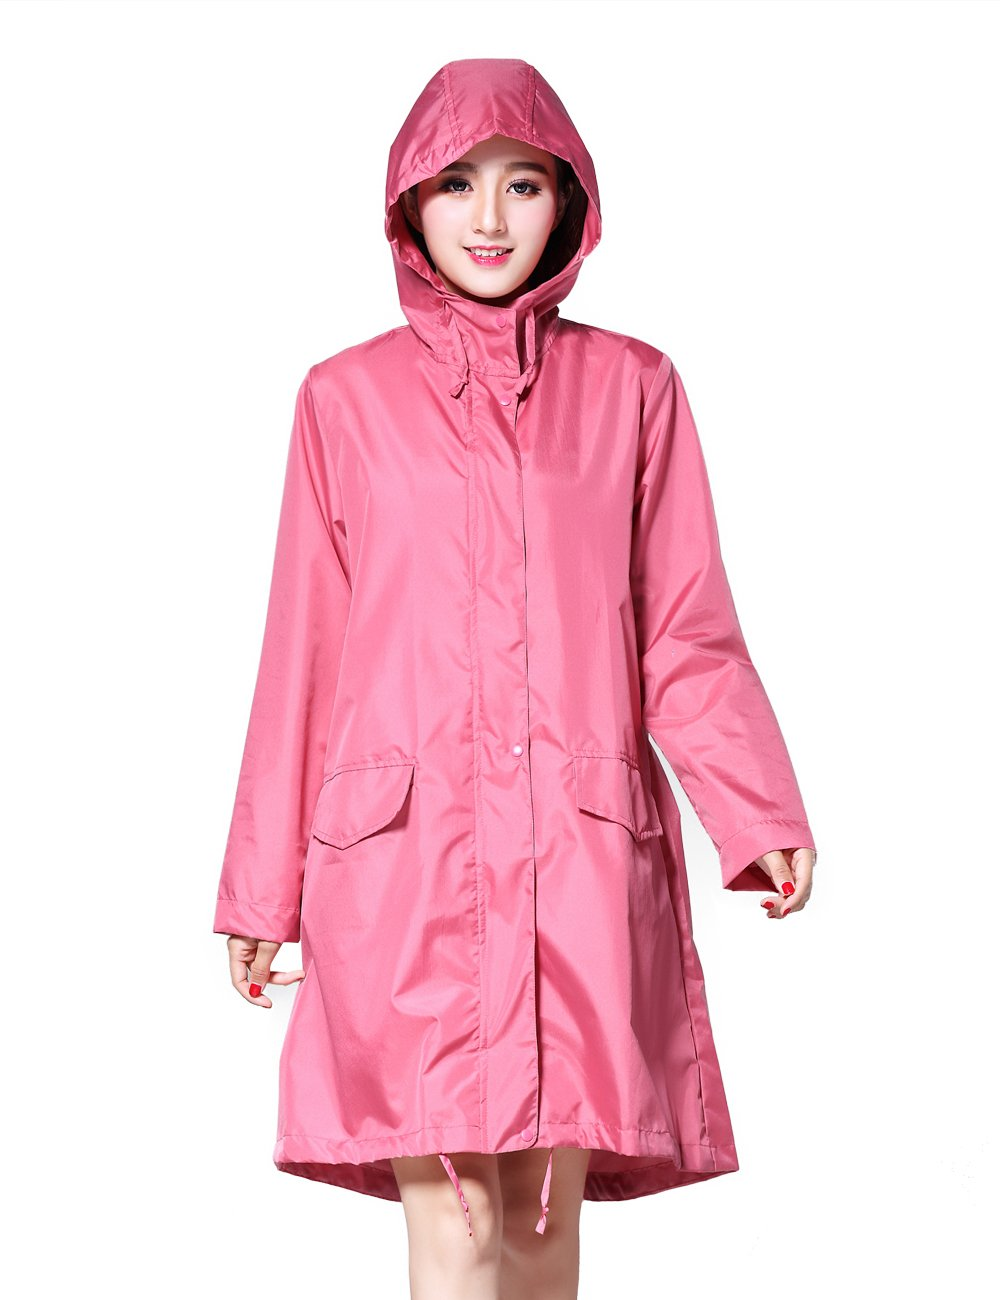 LOHASCASA Women's and Big Gril's Waterproof Raincoat Lightweight Packable Rain Coat Jacket Windbreaker Hooded Pink XL